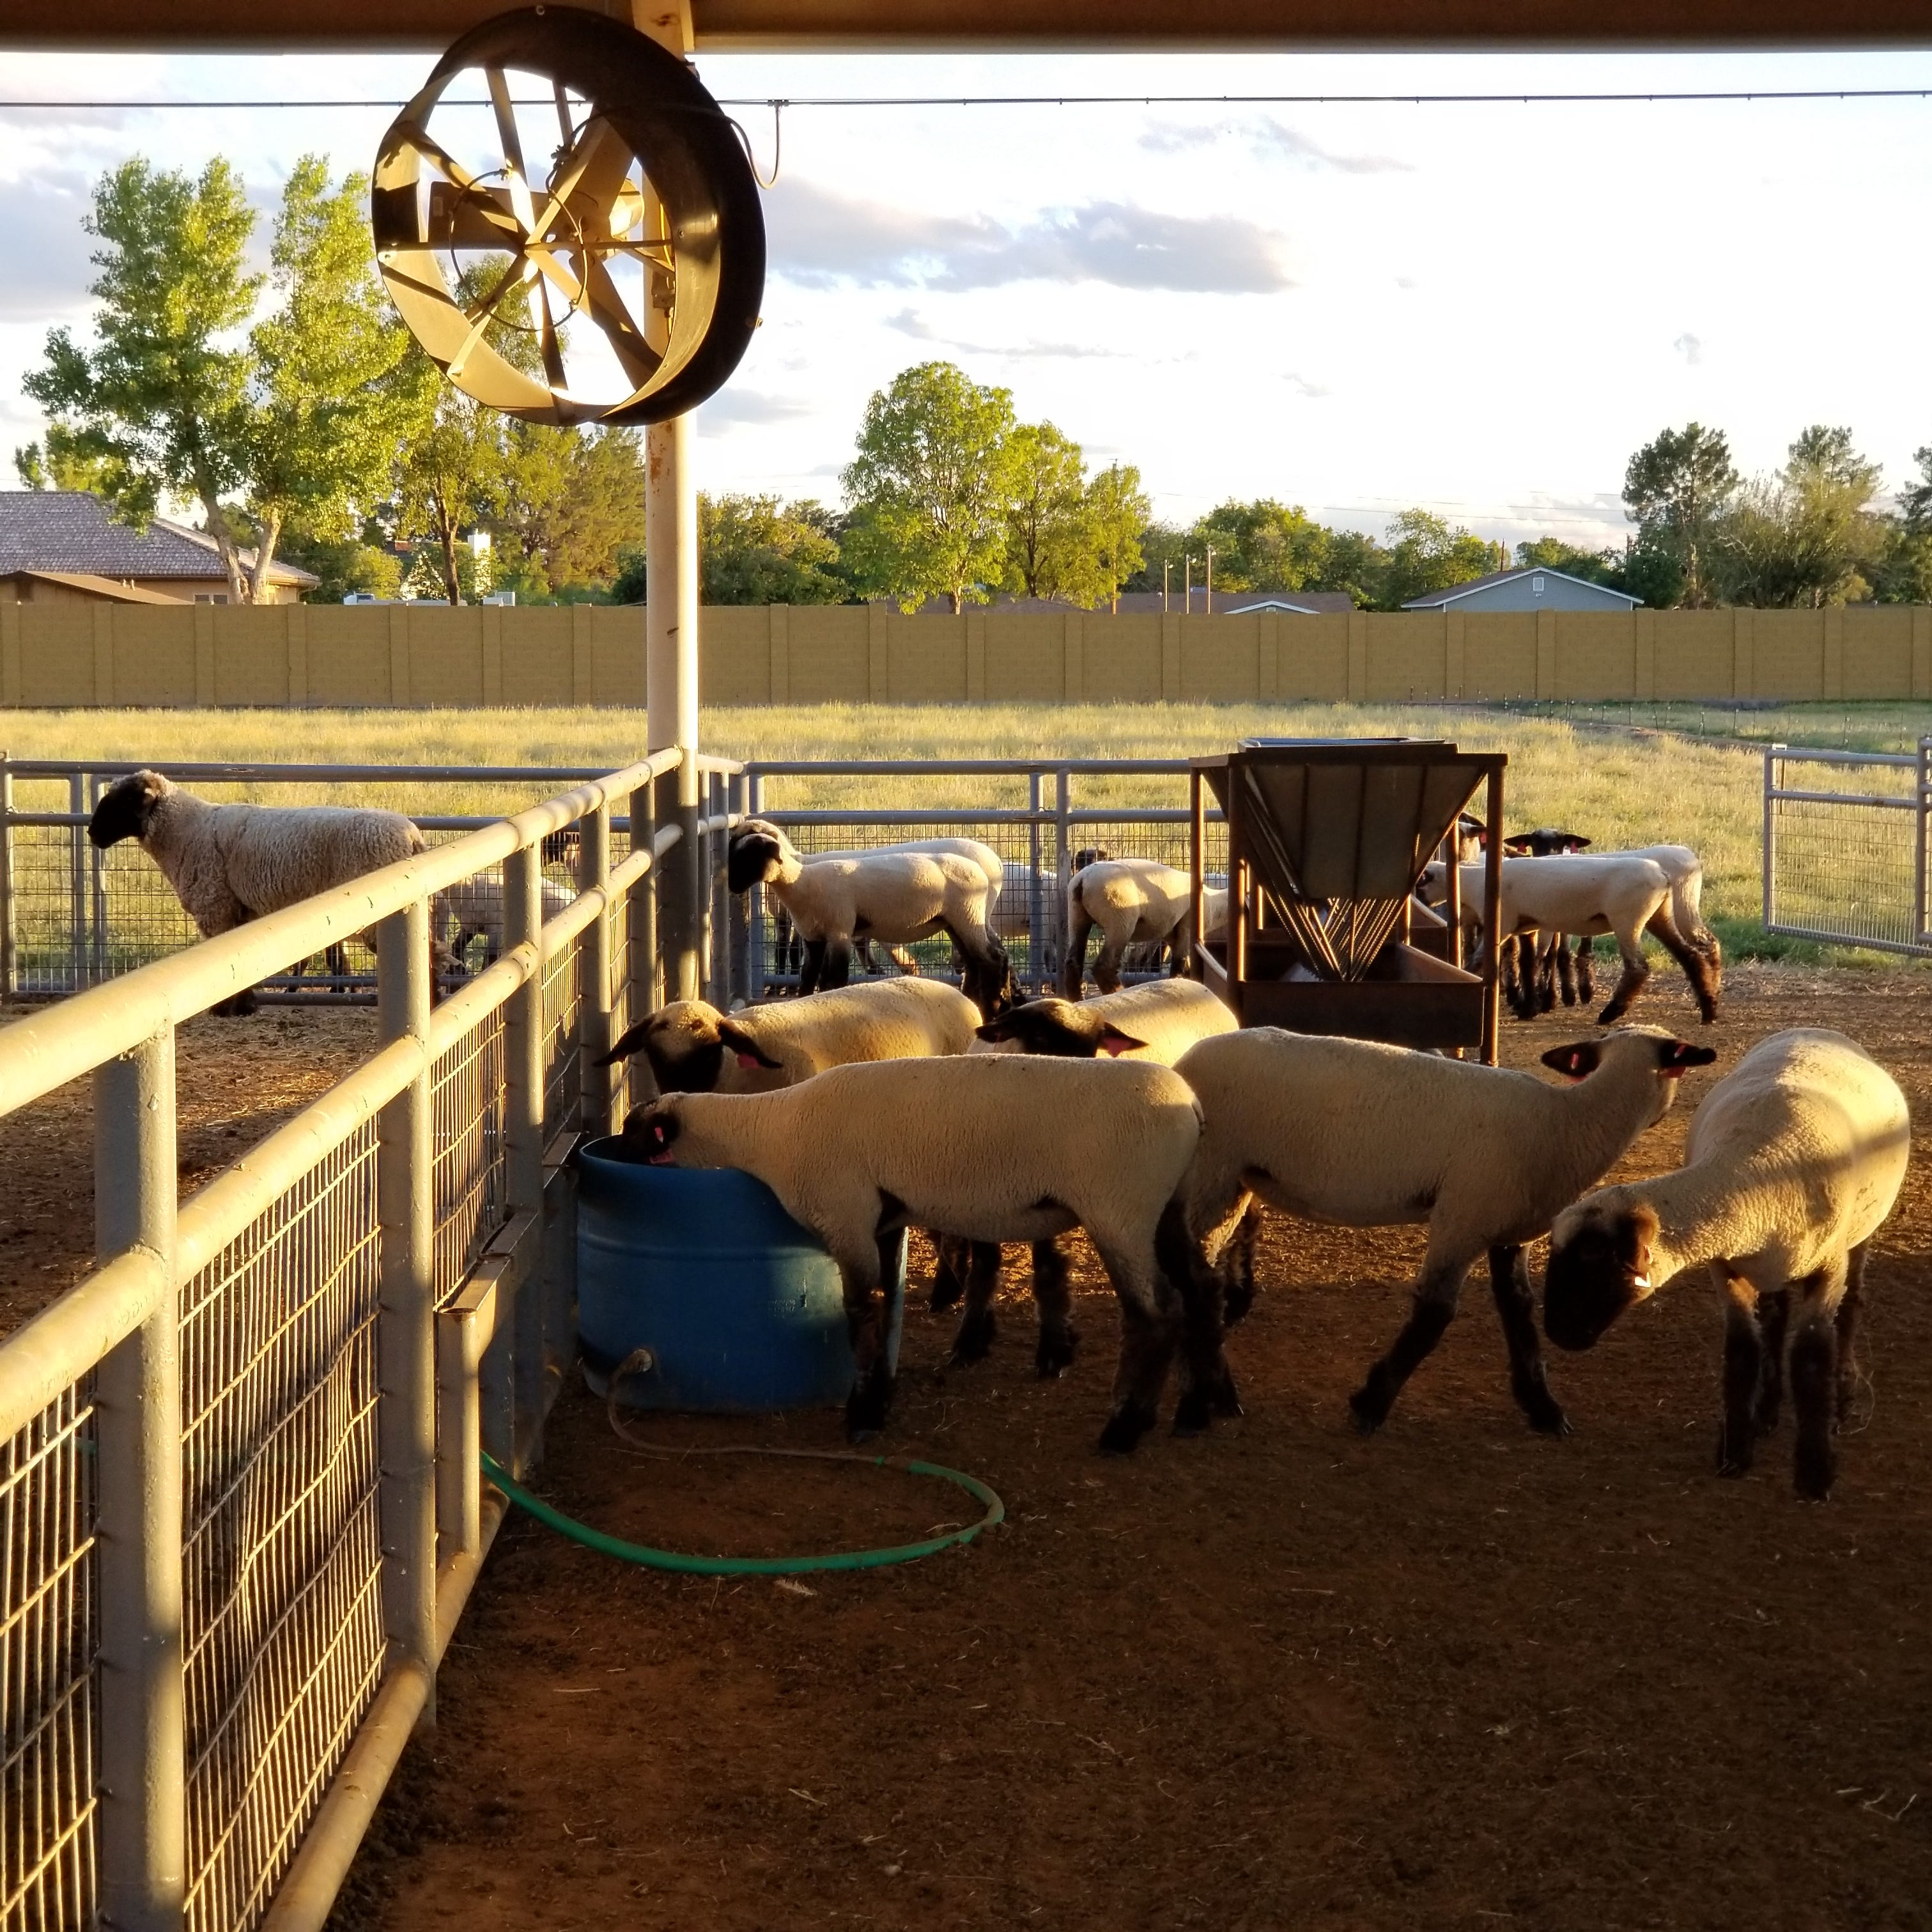 Farmers raise a family – and a herd of sheep – in suburban Peoria